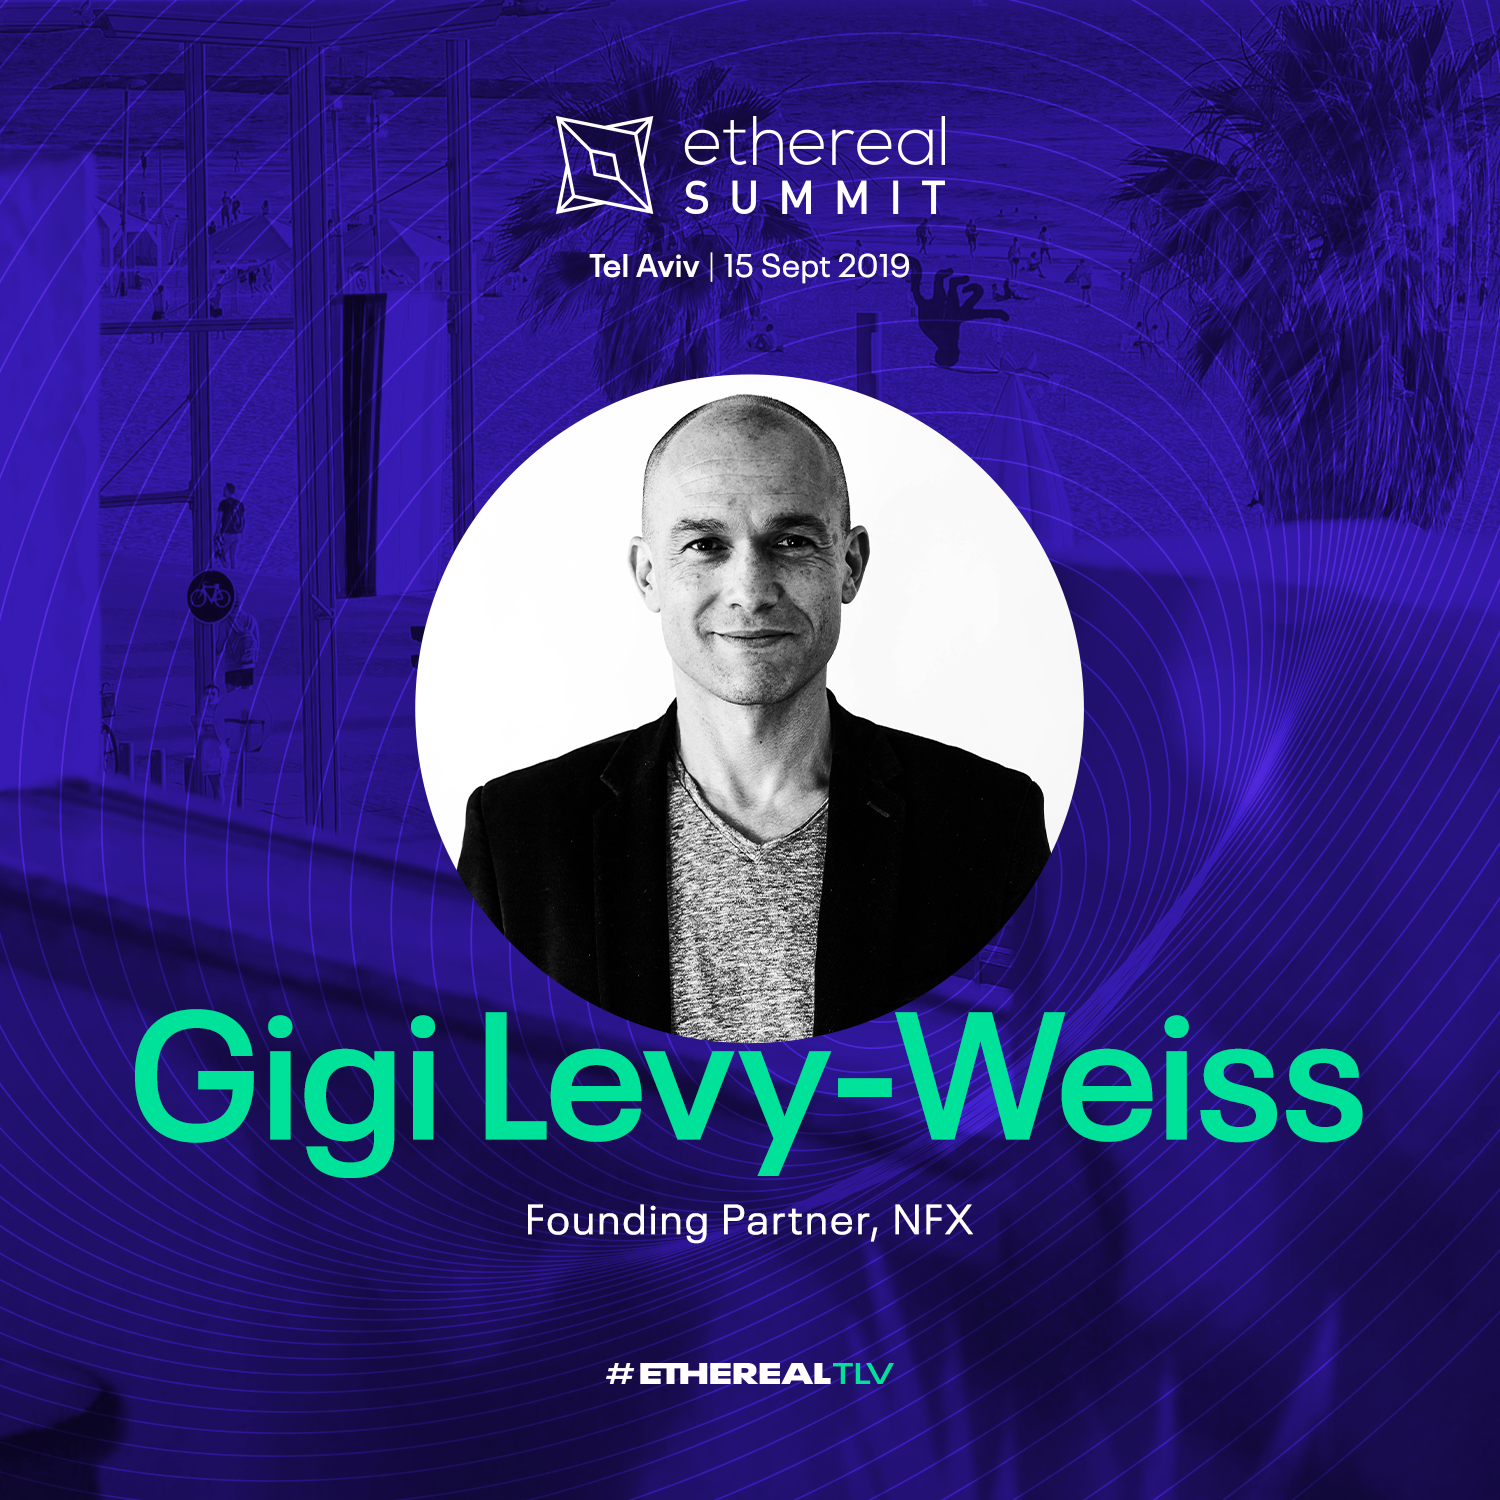 ethereal-tlv-2019-speaker-cards-square-gigi-levy-weiss.png